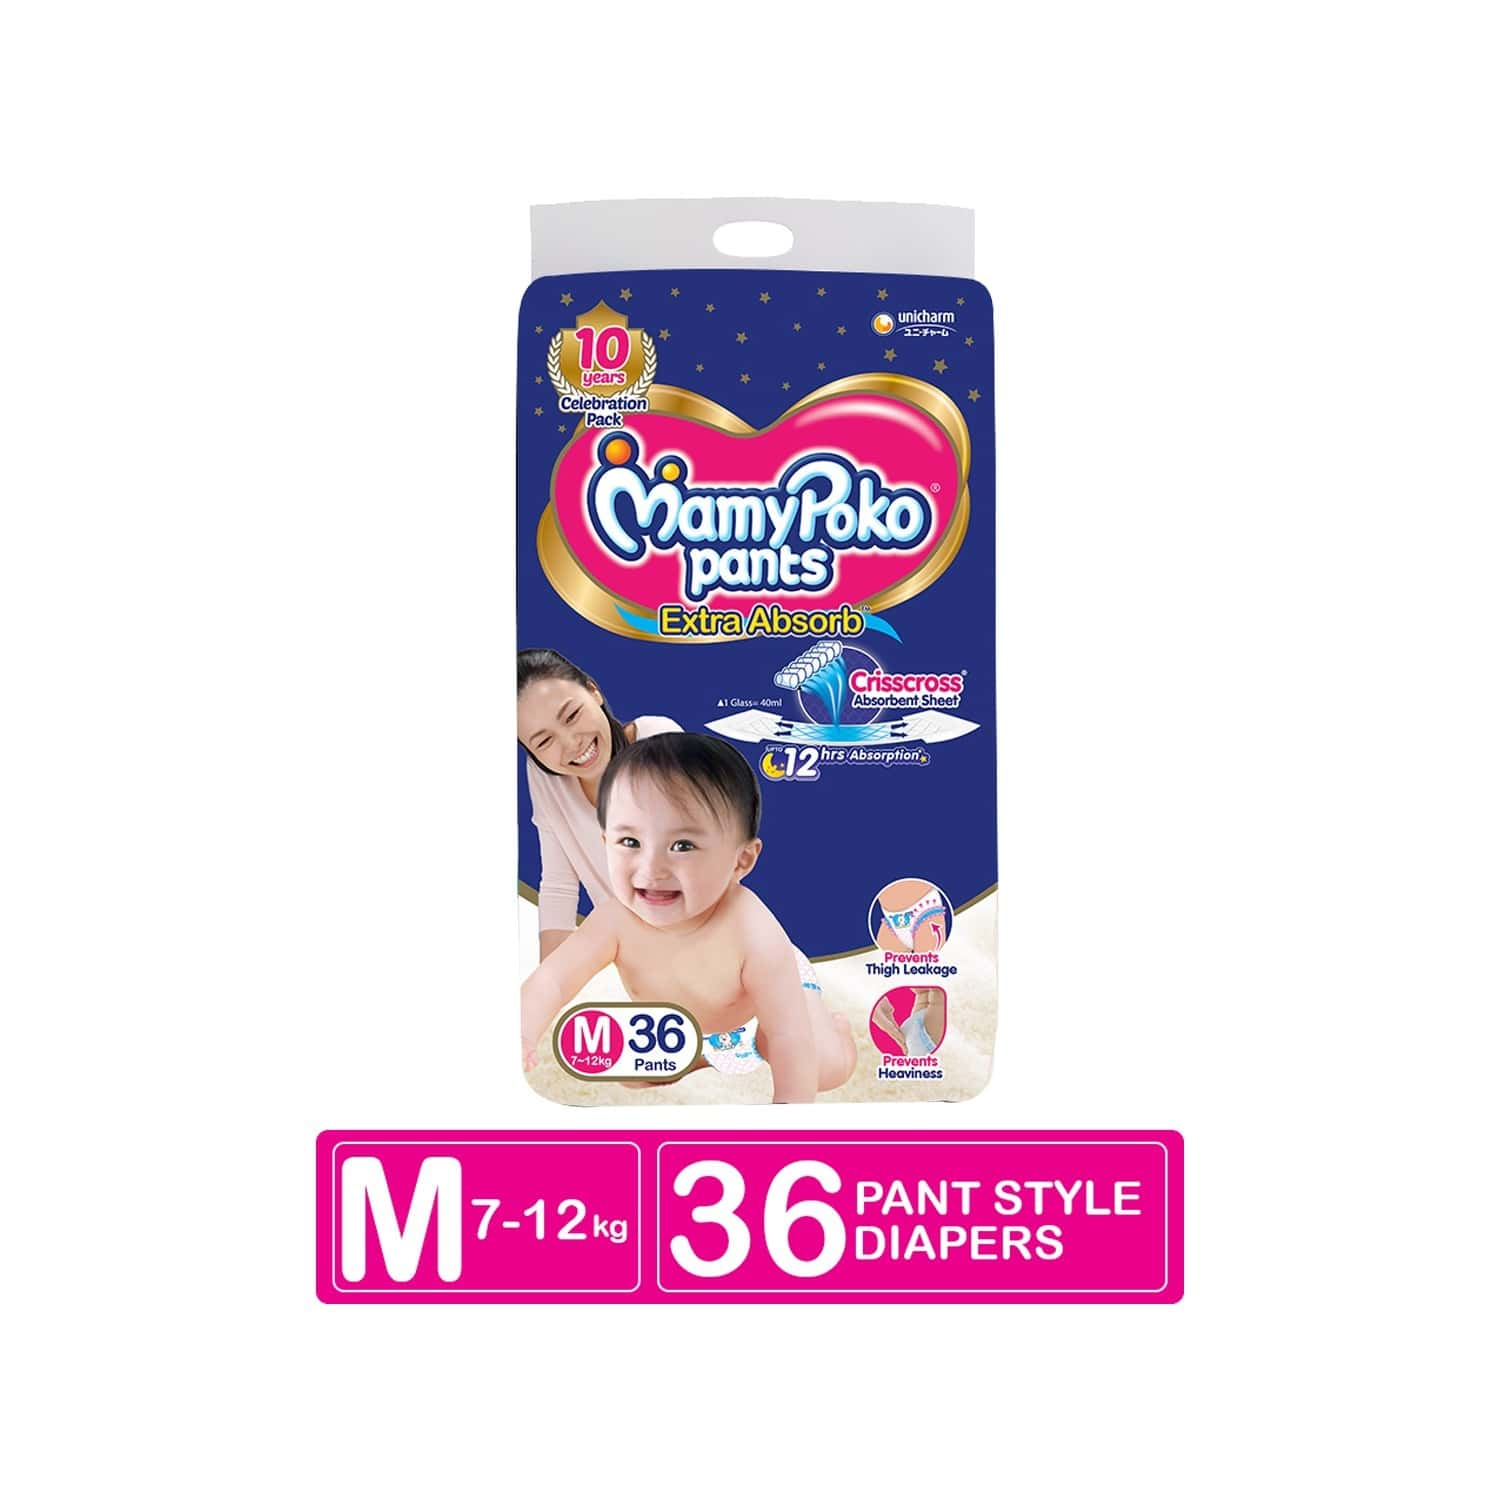 Mamypoko Pants Extra Absorb Diaper - Medium Size, Pack Of 36 Diapers